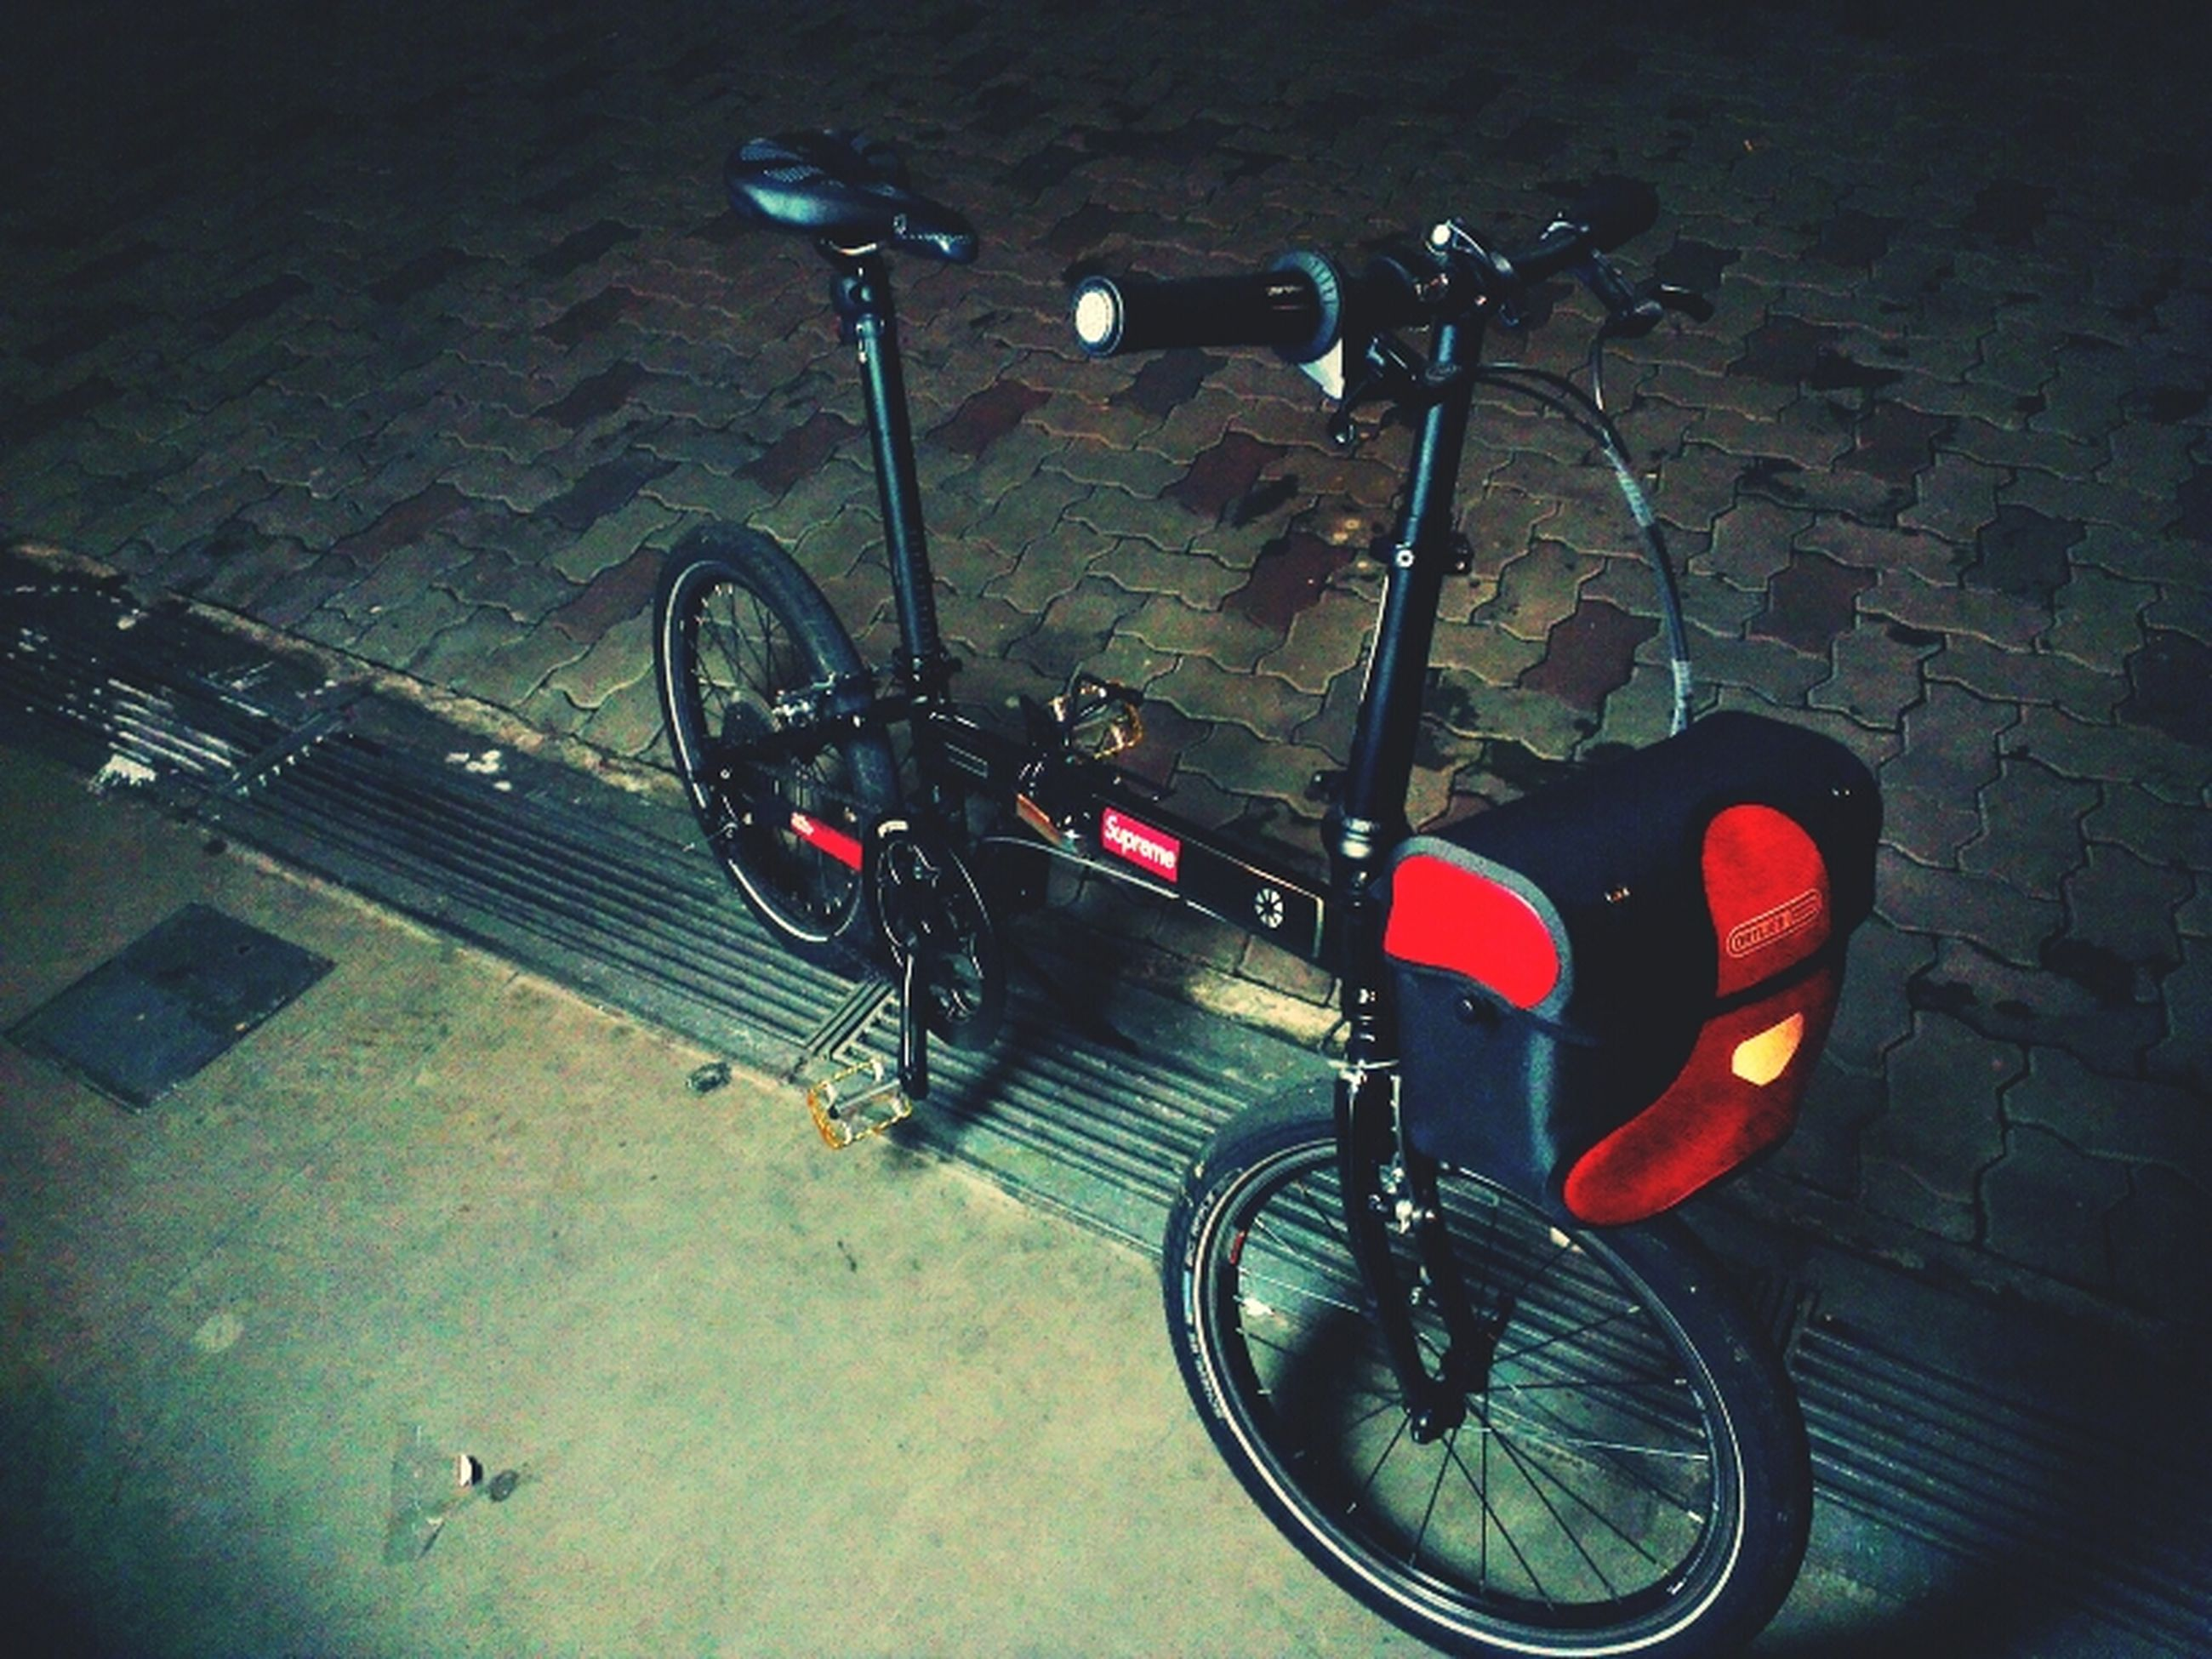 transportation, high angle view, mode of transport, night, land vehicle, illuminated, street, red, no people, road, outdoors, car, stationary, close-up, street light, bicycle, lighting equipment, absence, parking